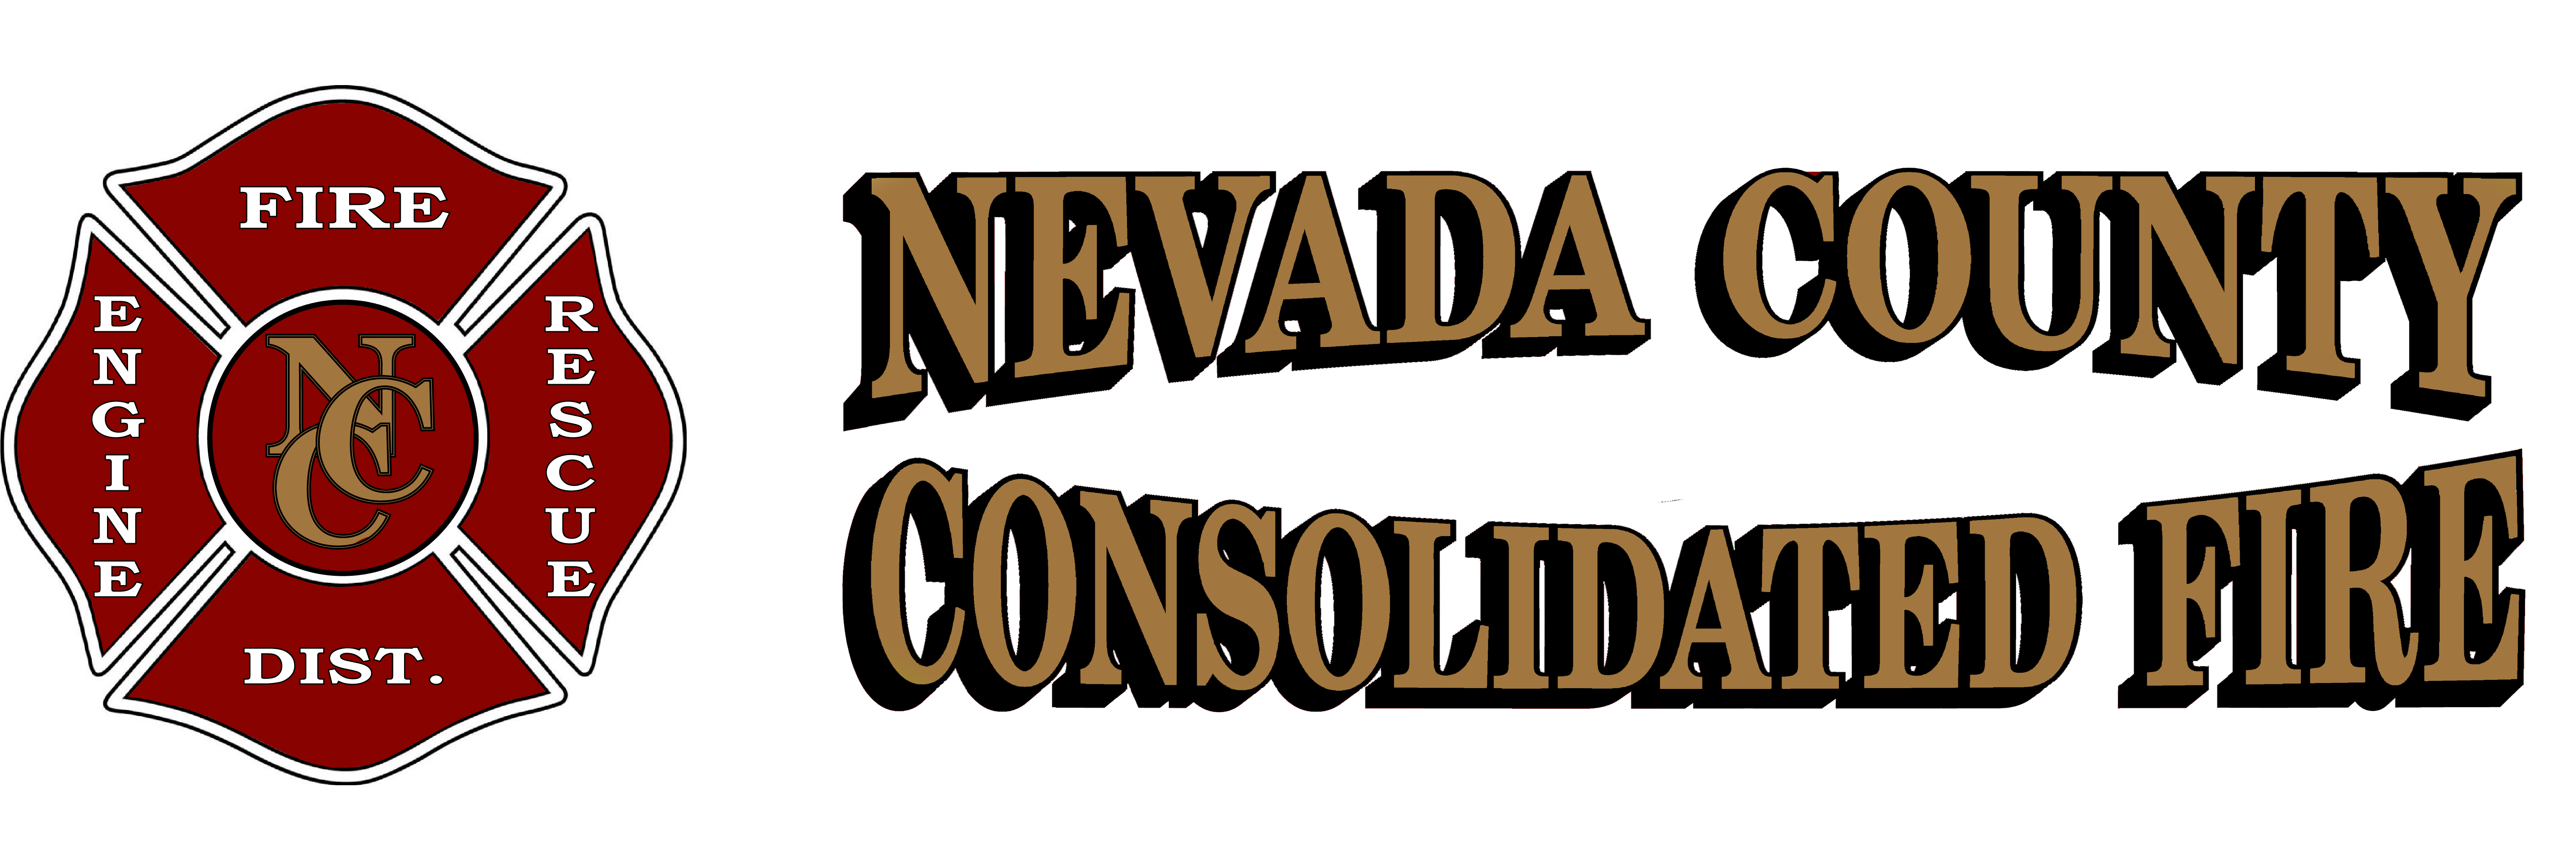 Nevada County Consolidated Fire District